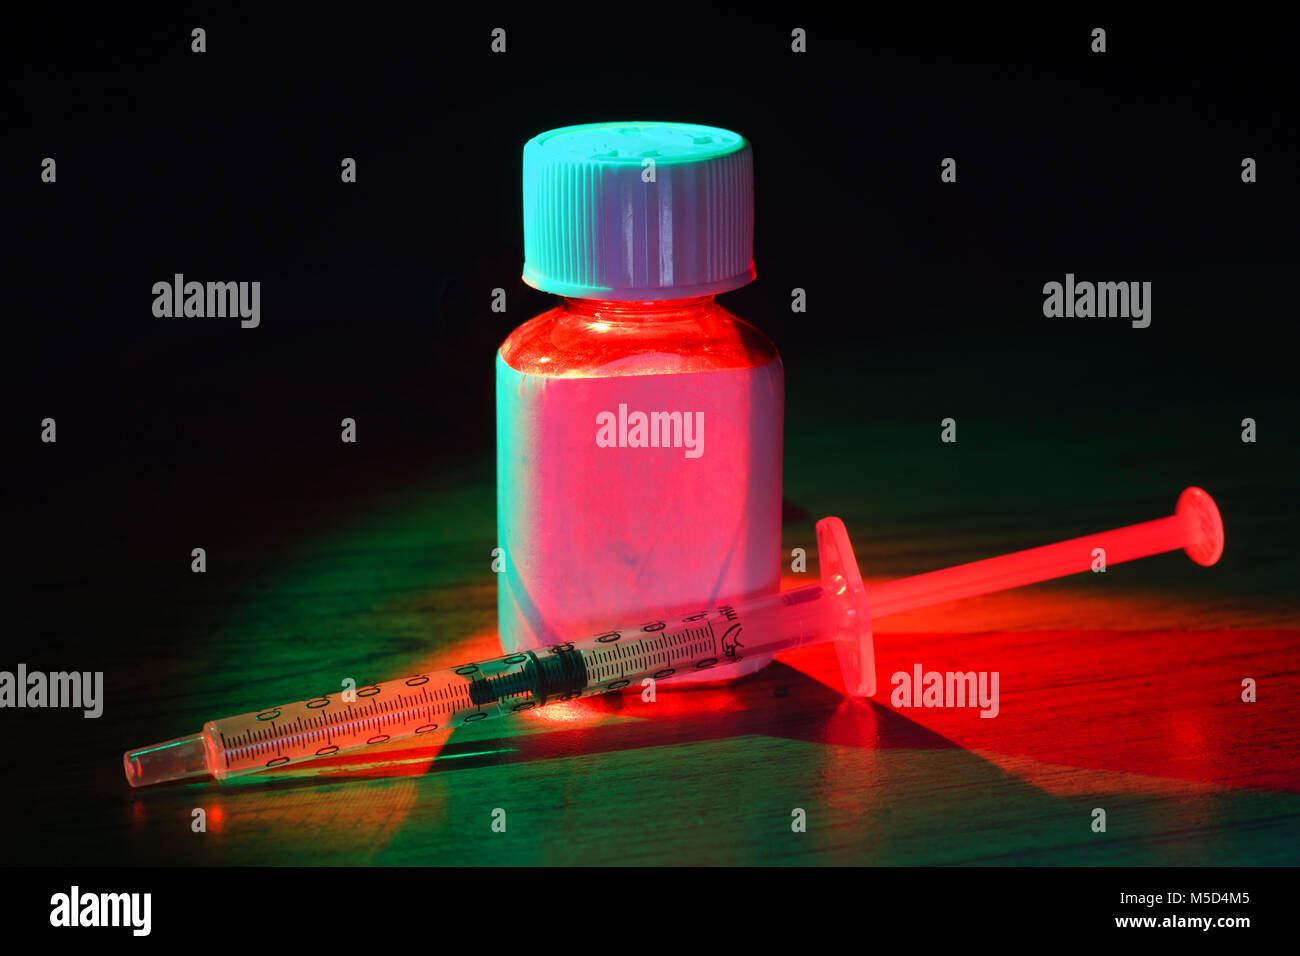 Syringe - medical measure with blank bottle, for delivering liquids, no needle attached - Stock Image